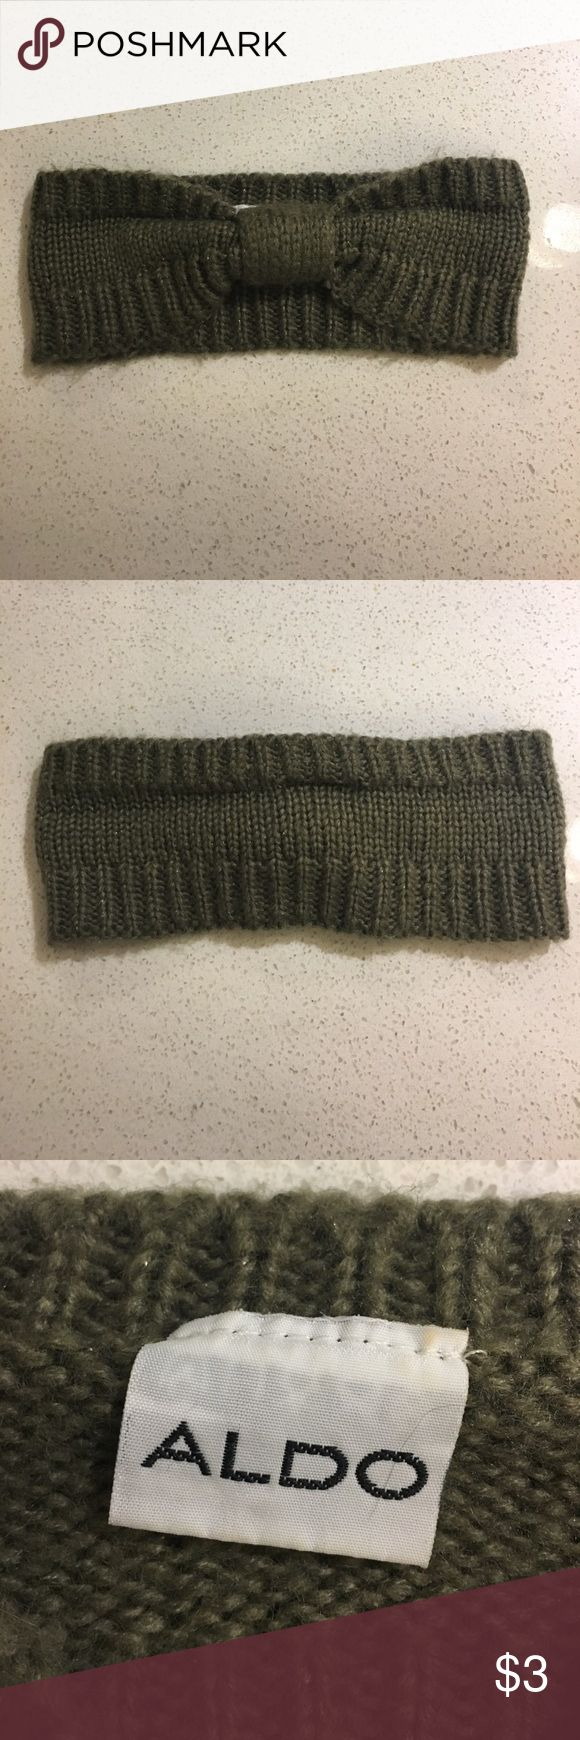 Olive green ALDO winter headband Dark olive color with a little glitter knit headband from ALDO - cute with hair in a pony or down & curled Aldo Accessories Hair Accessories